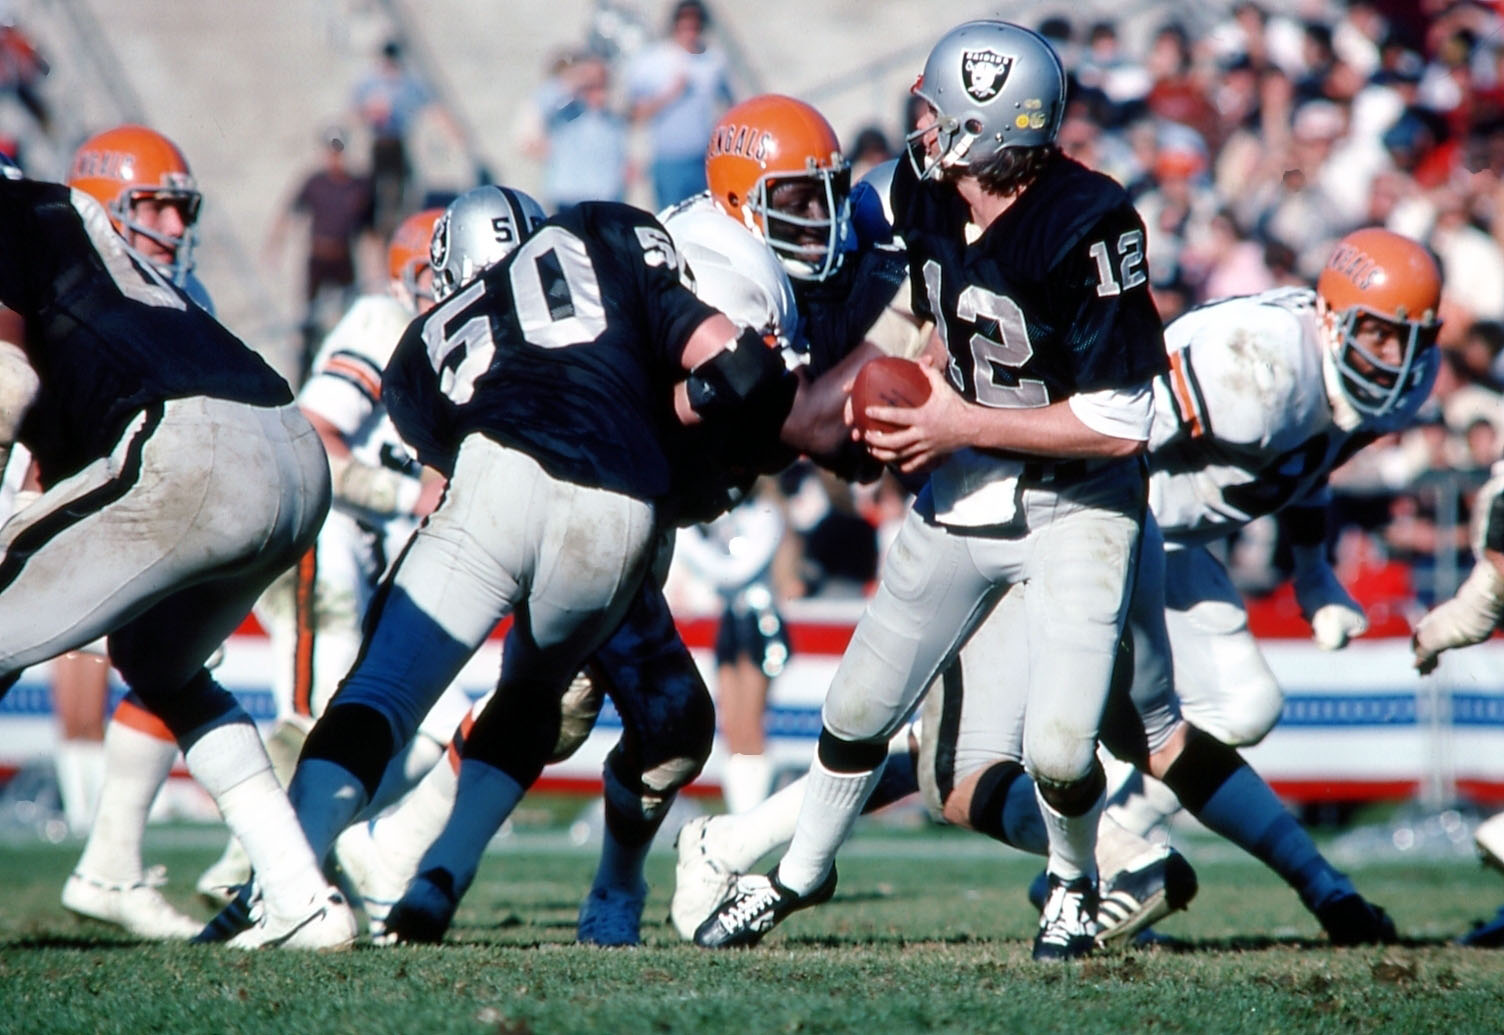 Classic Nfl Game Action Slides 1960s 1980s